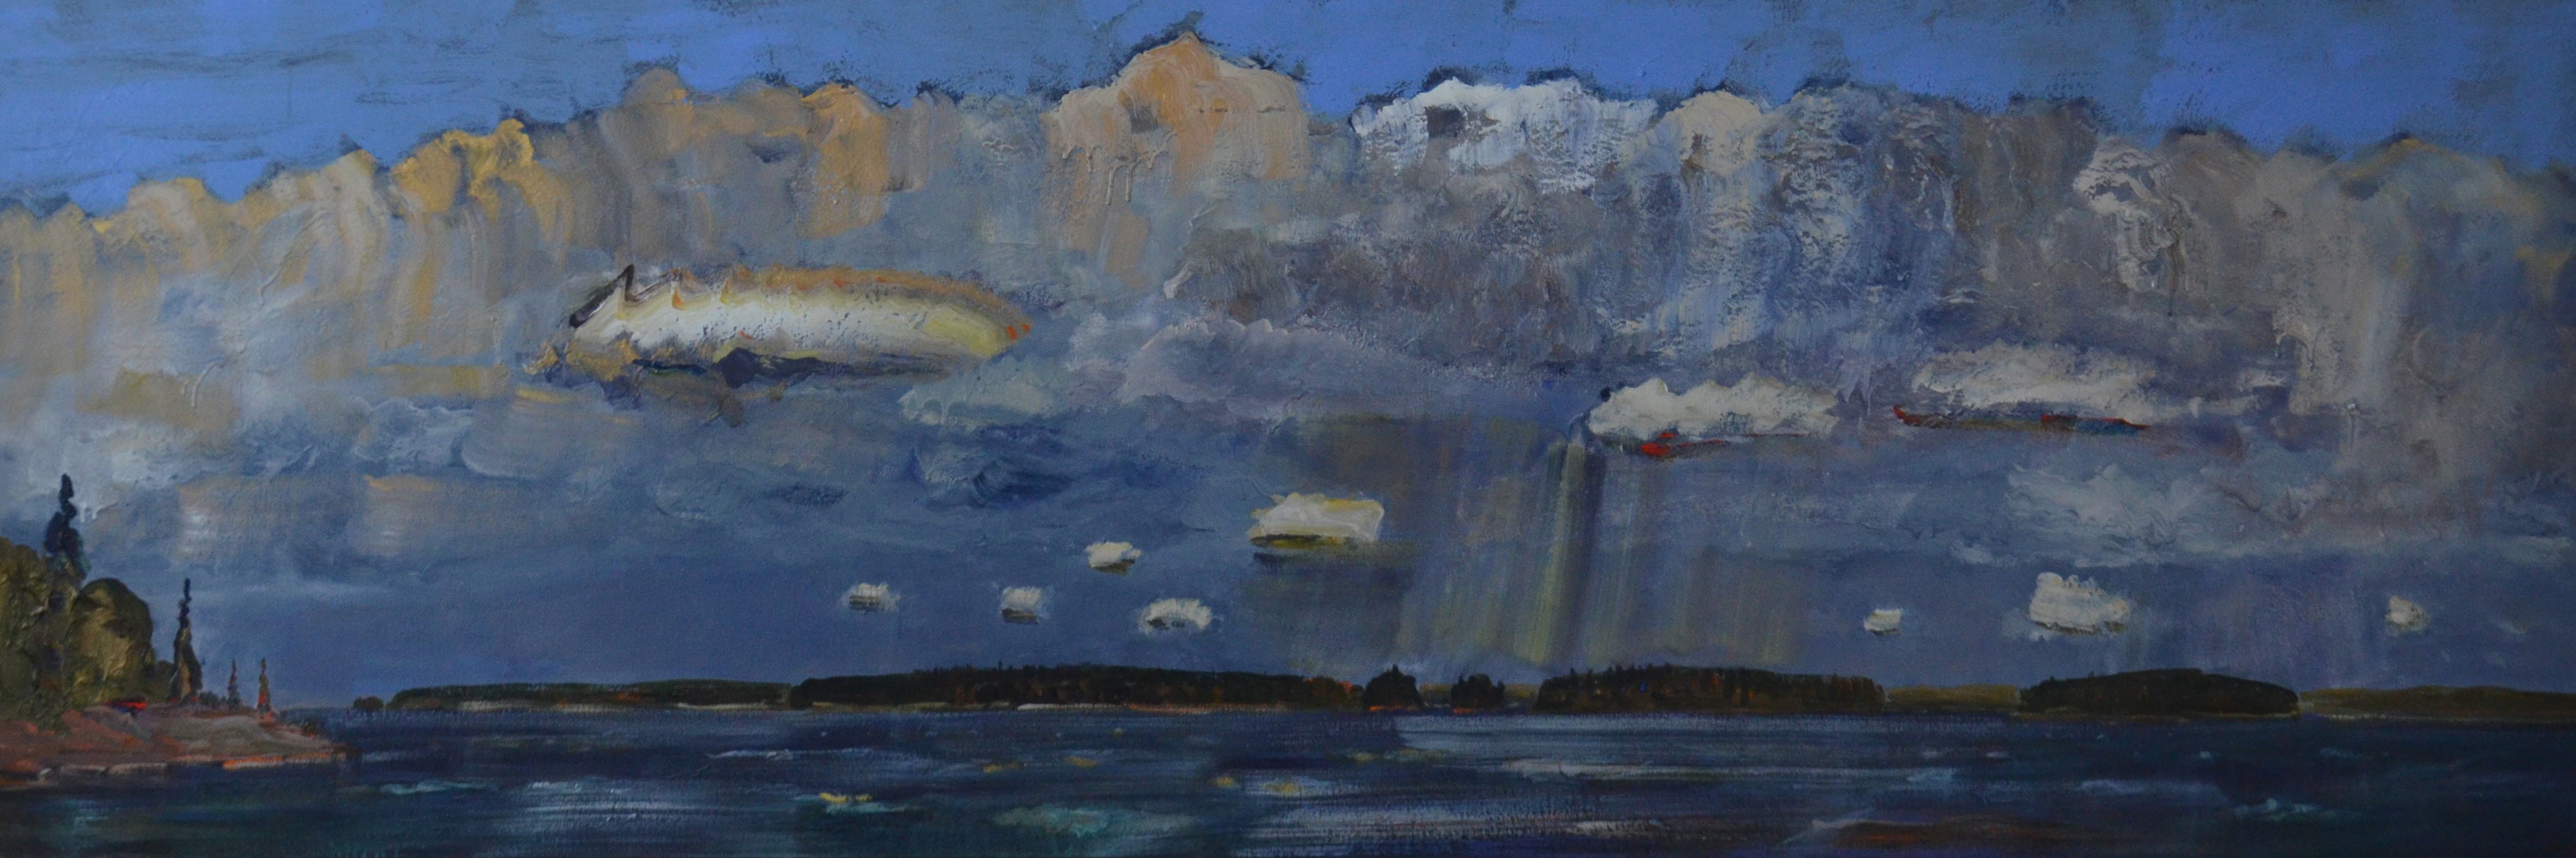 Storm-Coming-Across-the-Lake-2009-2014-Acrylic-on-canvas-40in-x-109in